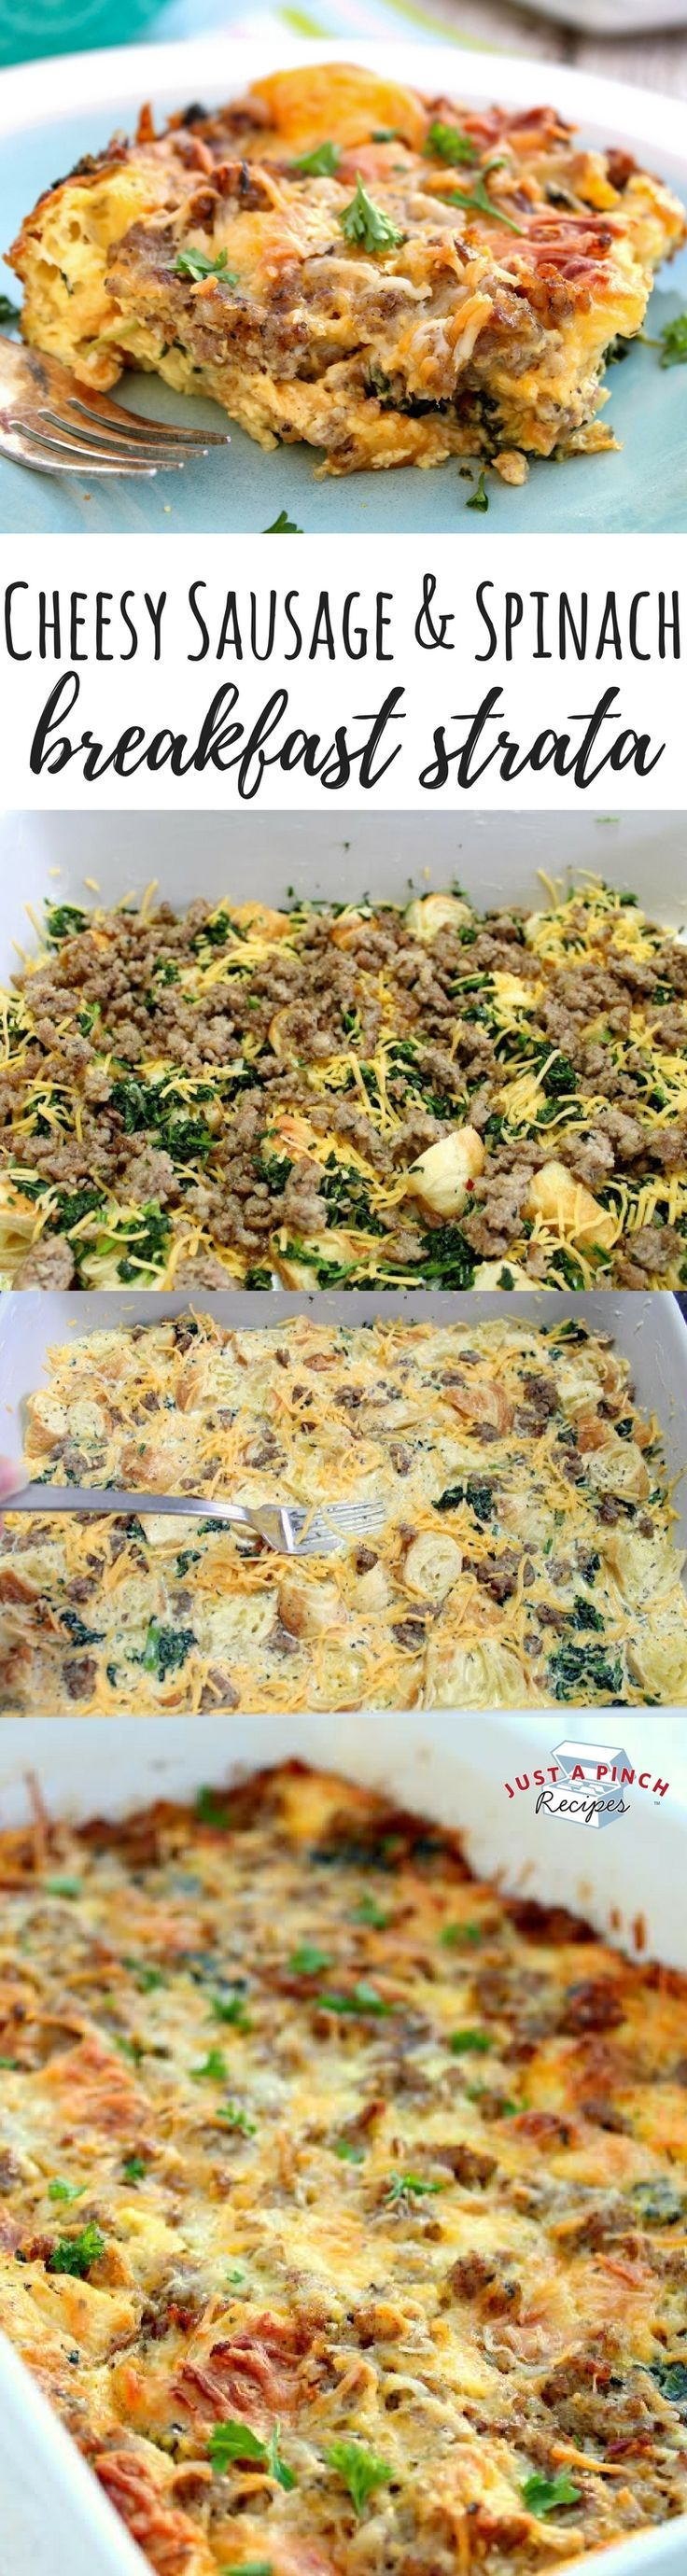 This easy, cheesy sausage & spinach breakfast strata recipe is an easy breakfast or brunch recipe you can make ahead and pop in the oven the next day!